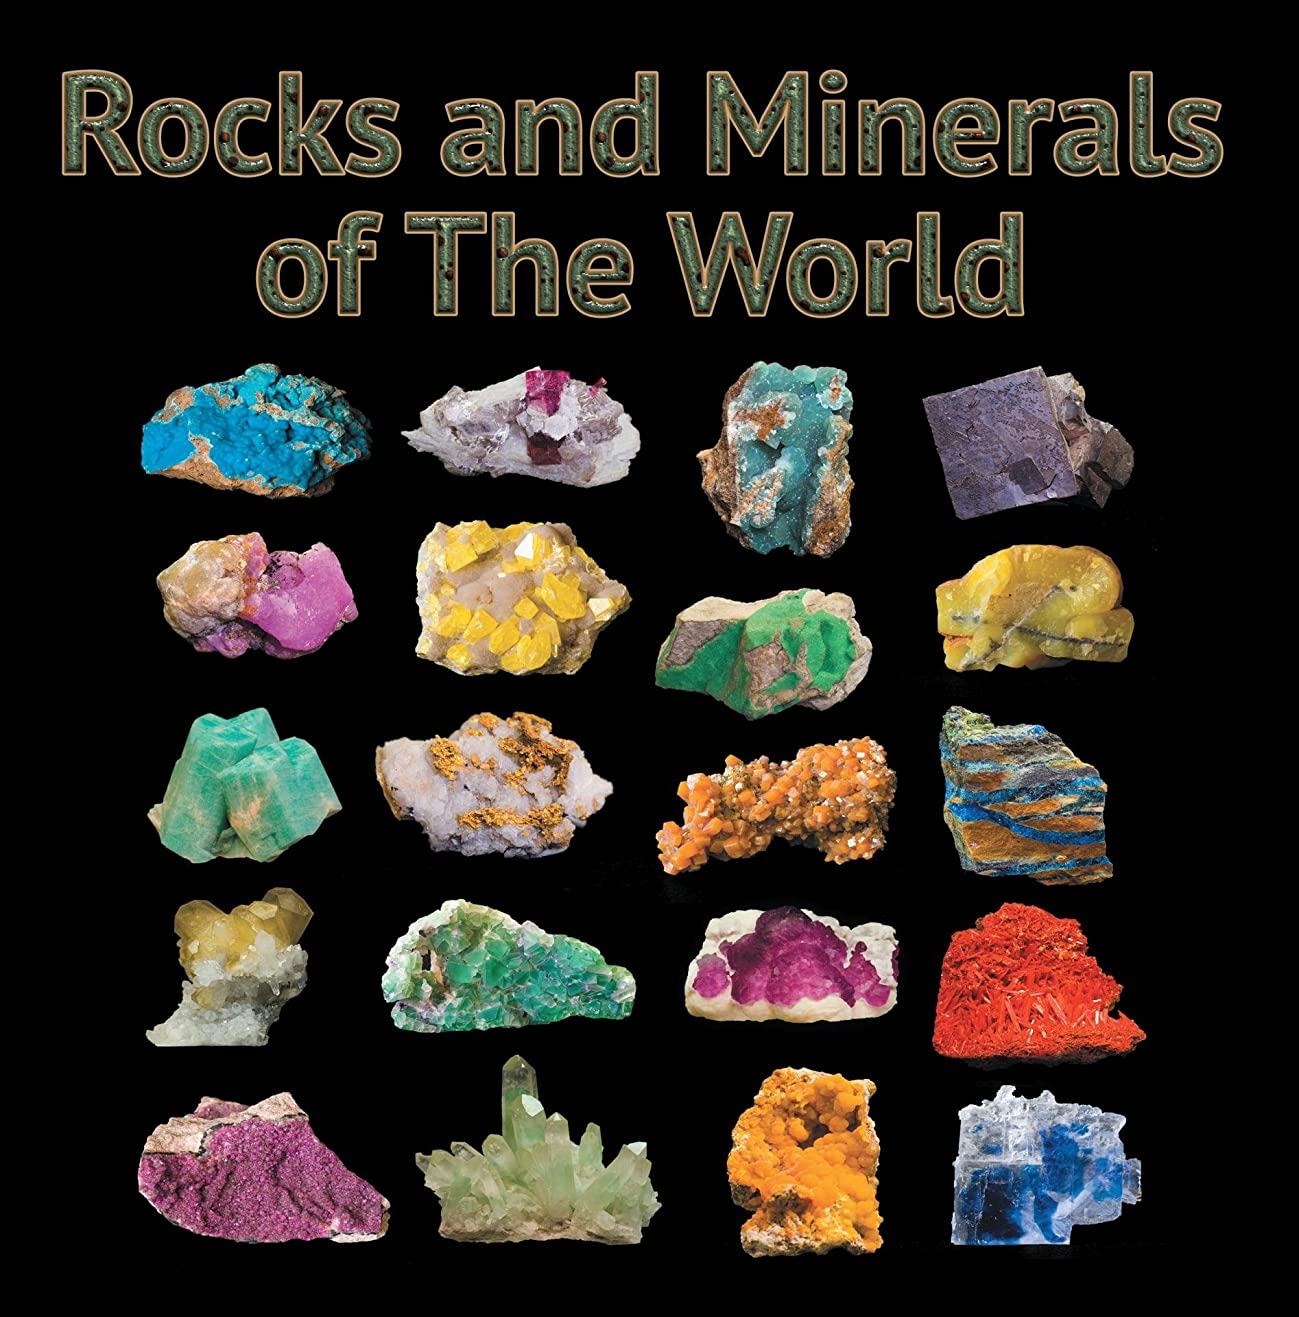 Rocks and Minerals of The World: Geology for Kids - Minerology and Sedimentology (Children's Rocks & Minerals Books) (English Edition)